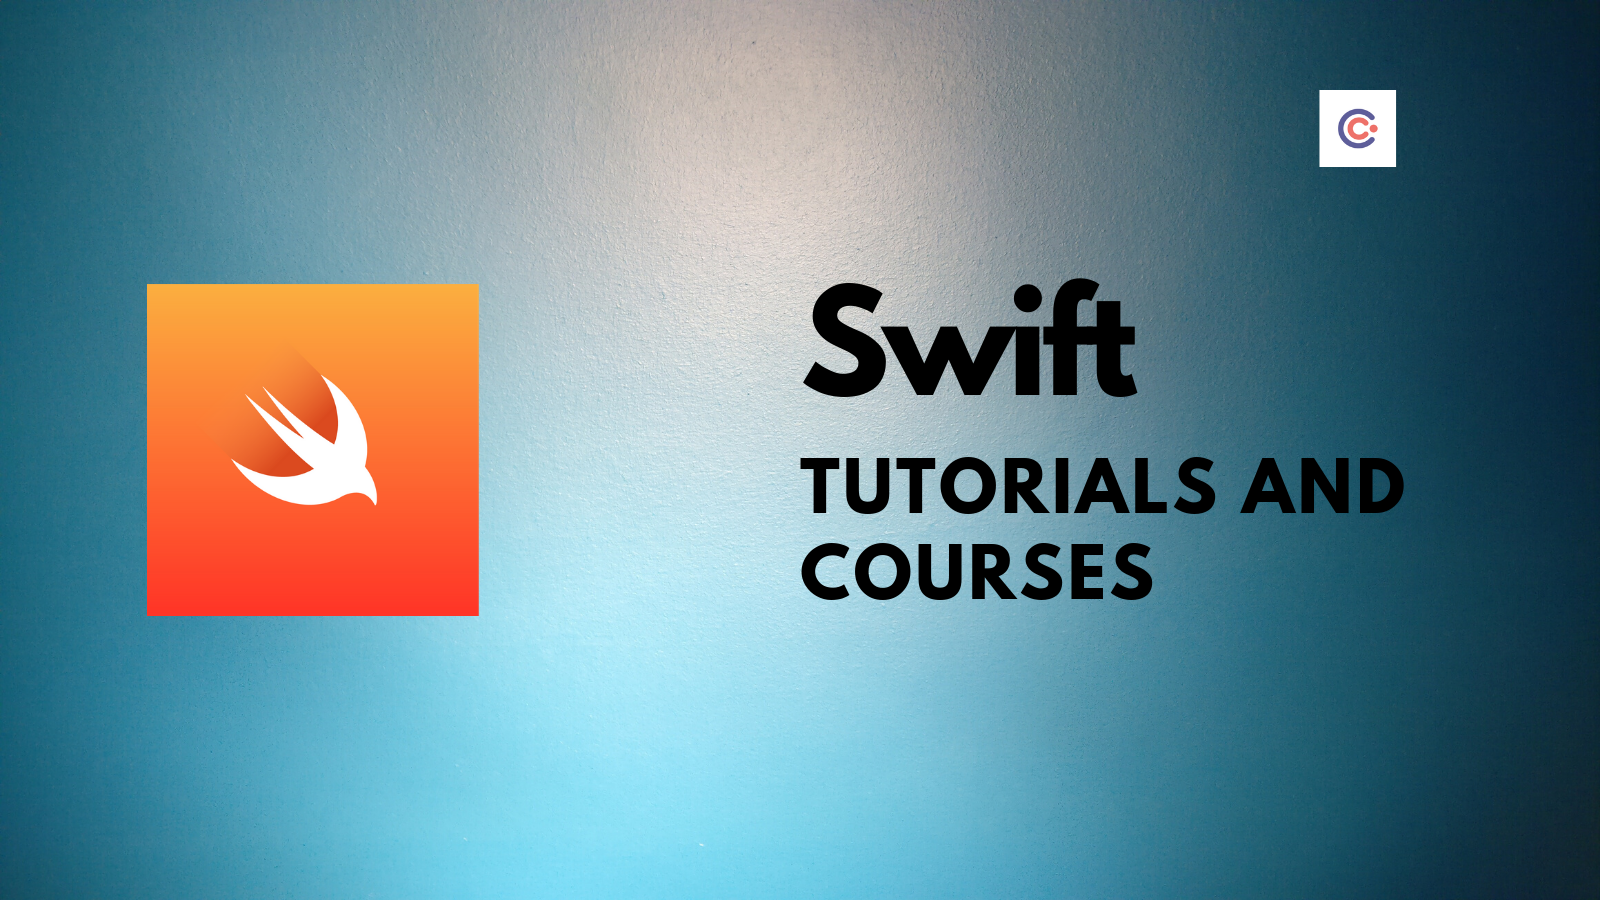 9 Best Swift Courses and Tutorials - Learn Swift Online